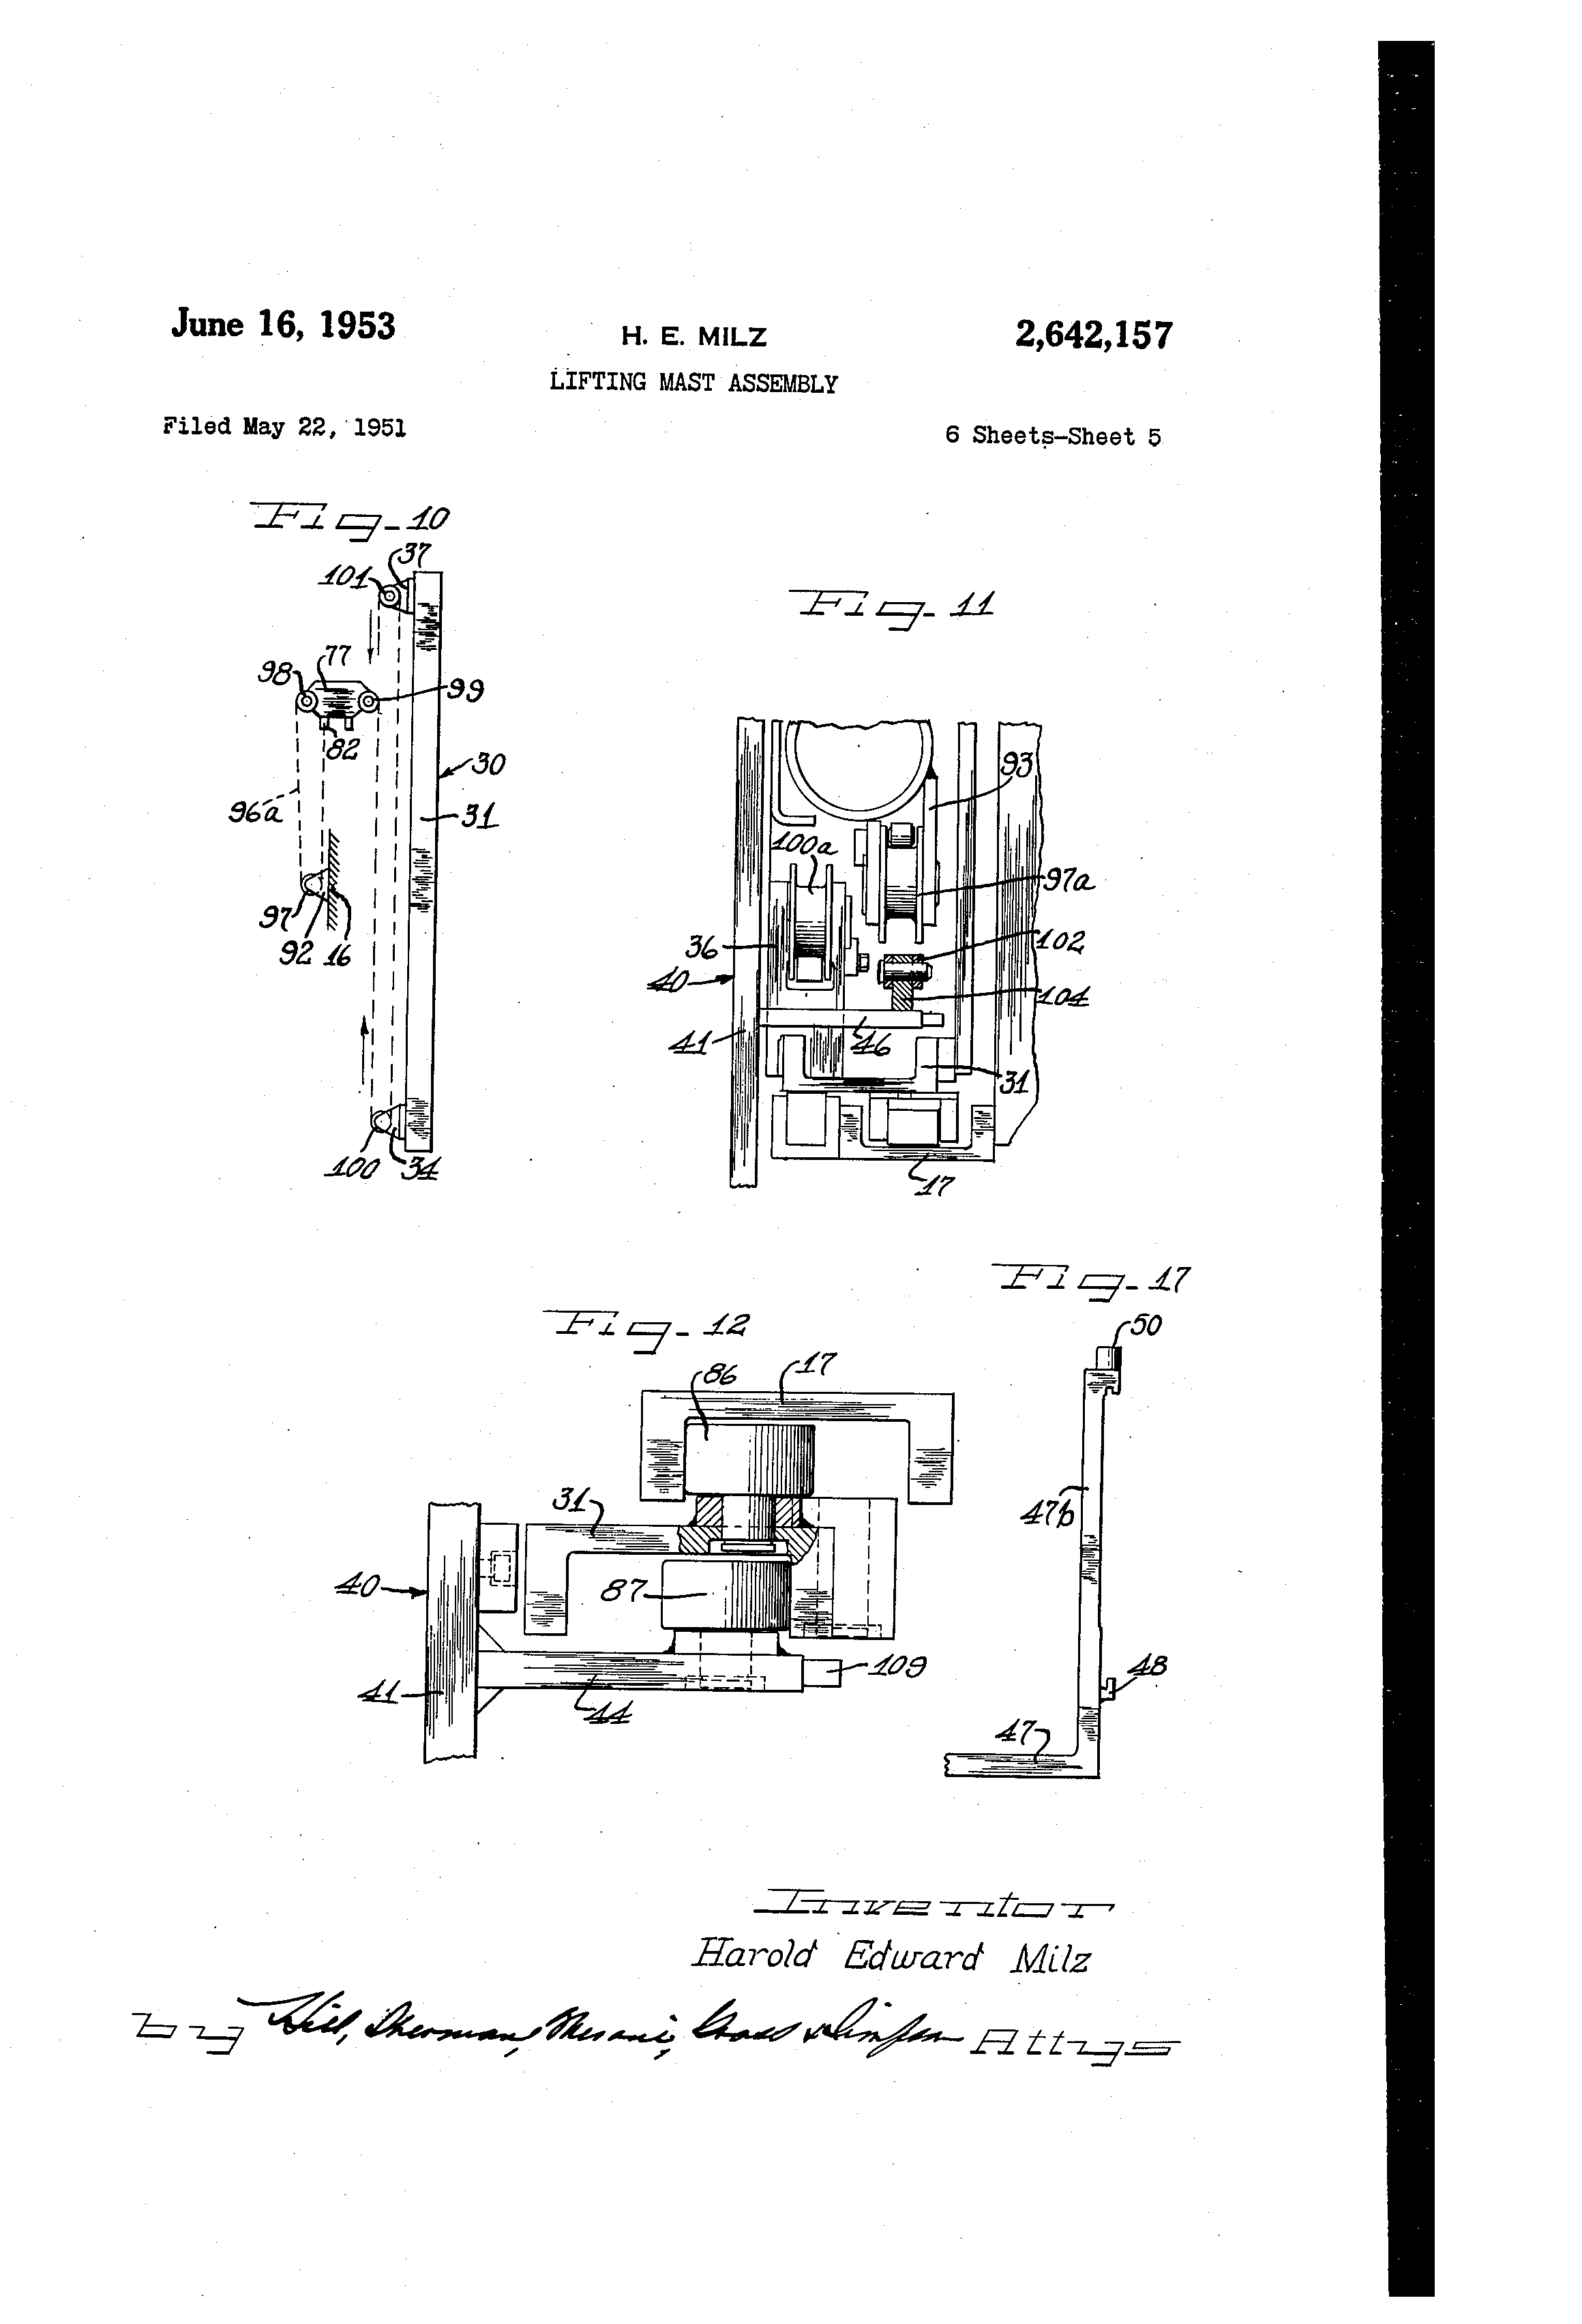 Gamewell Fire Alarm Box Wiring Diagram 38 Images System 3 Us2642157 4 Patent Lifting Mast Assembly Google Patents At